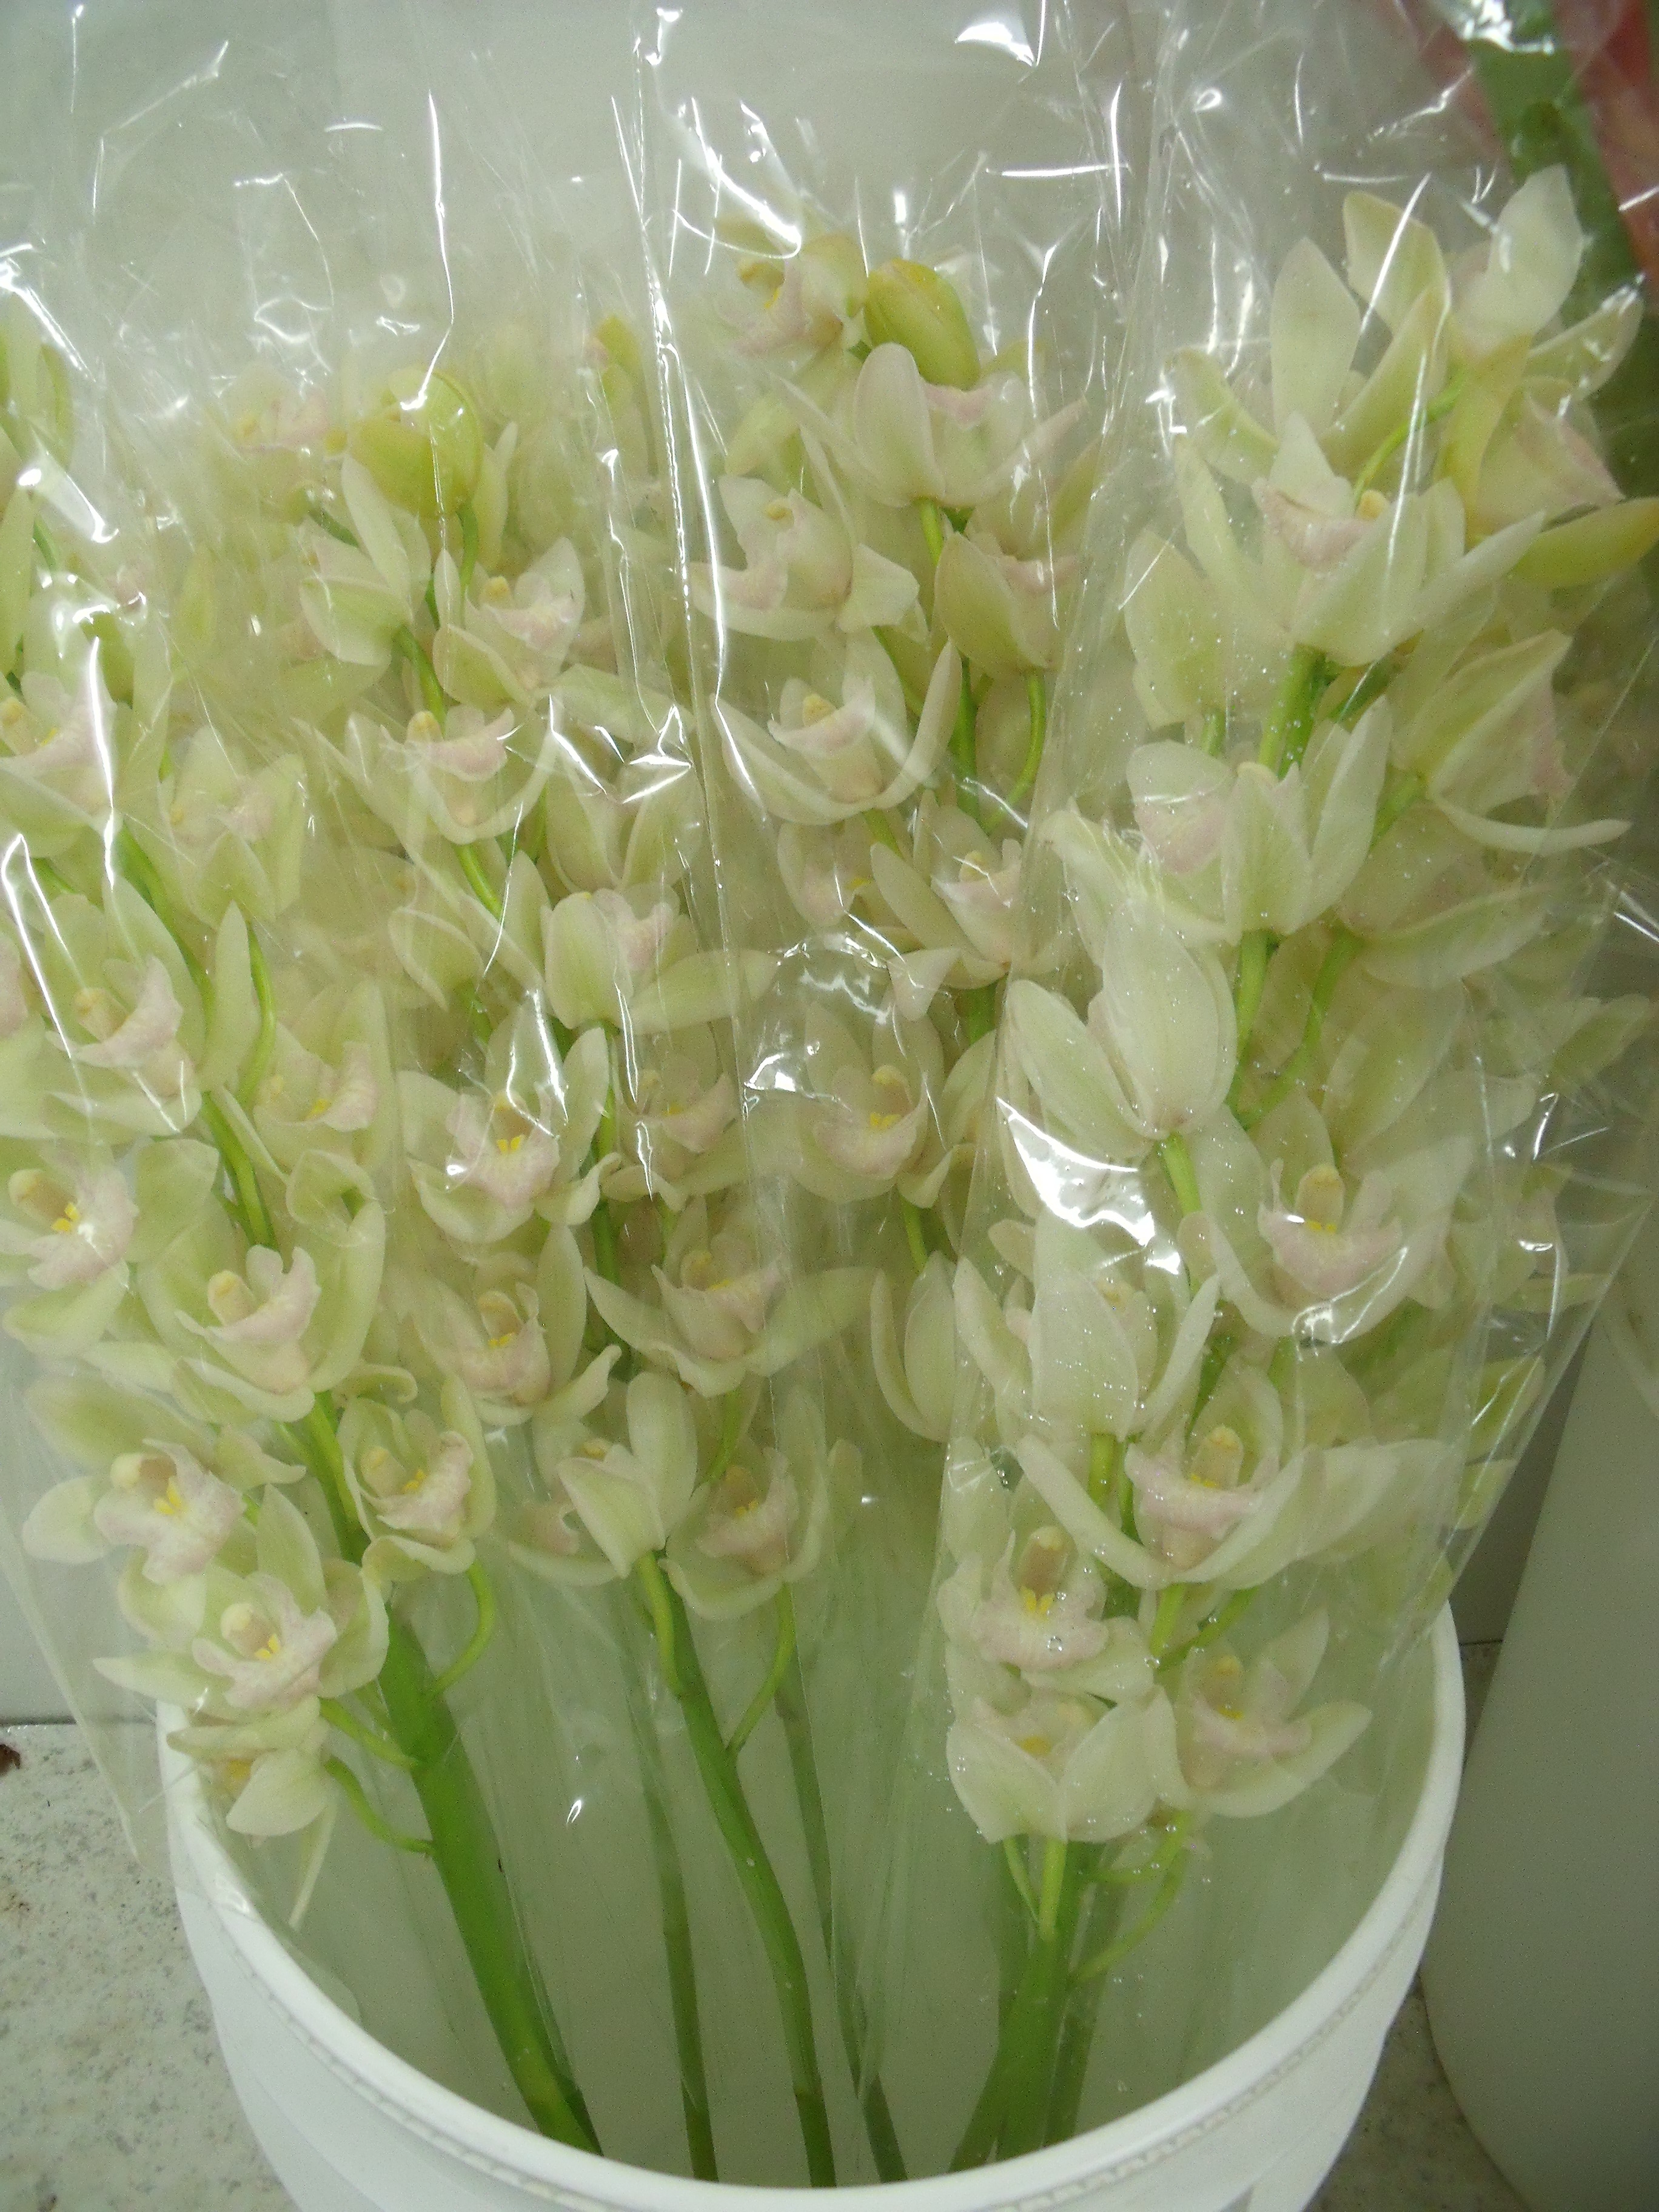 https://s3-us-west-2.amazonaws.com/public.prod.atlanticantigua.ca/images/FlowerFolder/Tropicals_Cymbidium_Mini_White.JPG